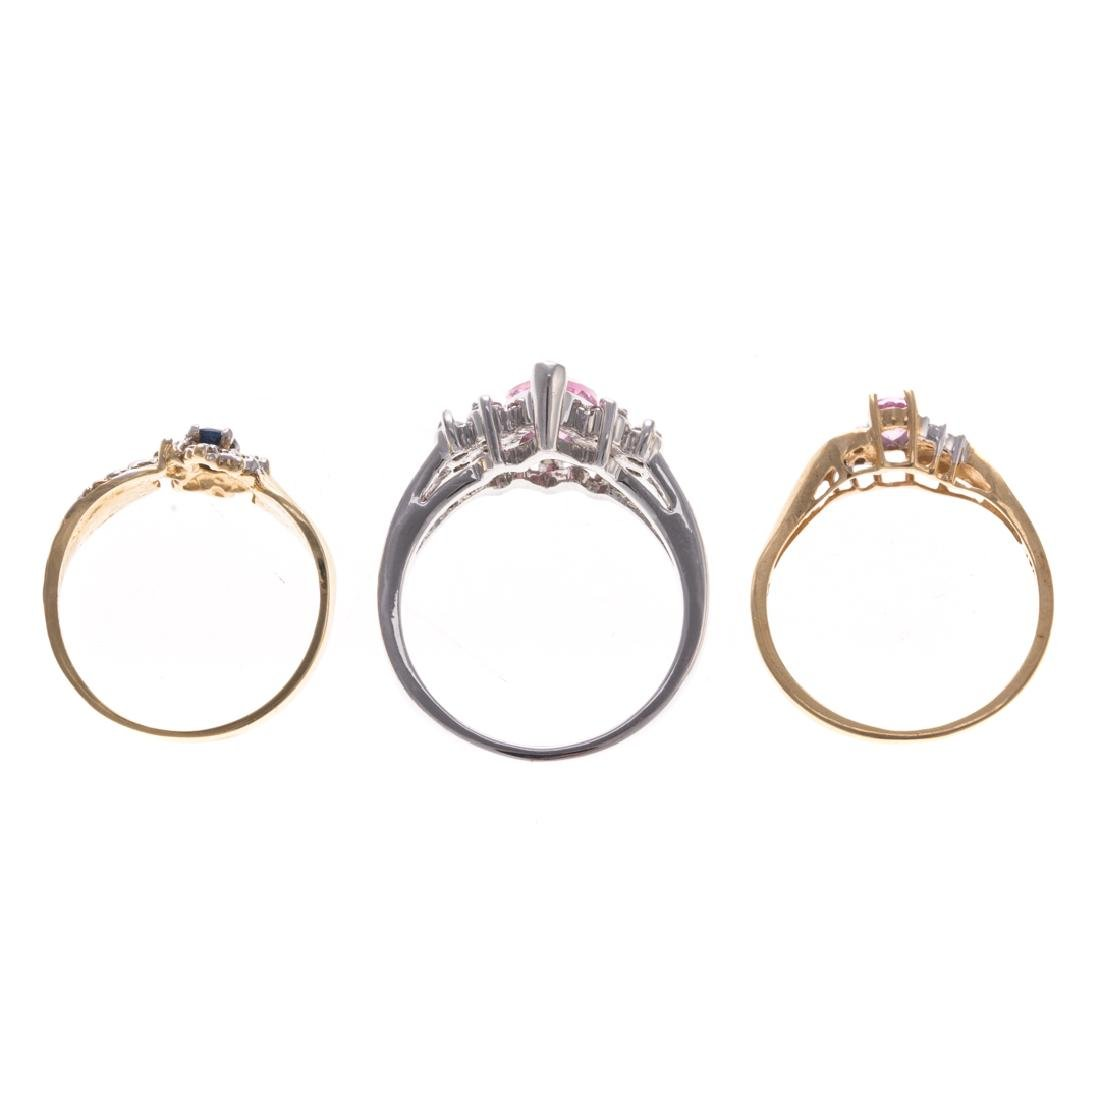 A Trio of Lady's Gem Stone Rings in Gold - 5